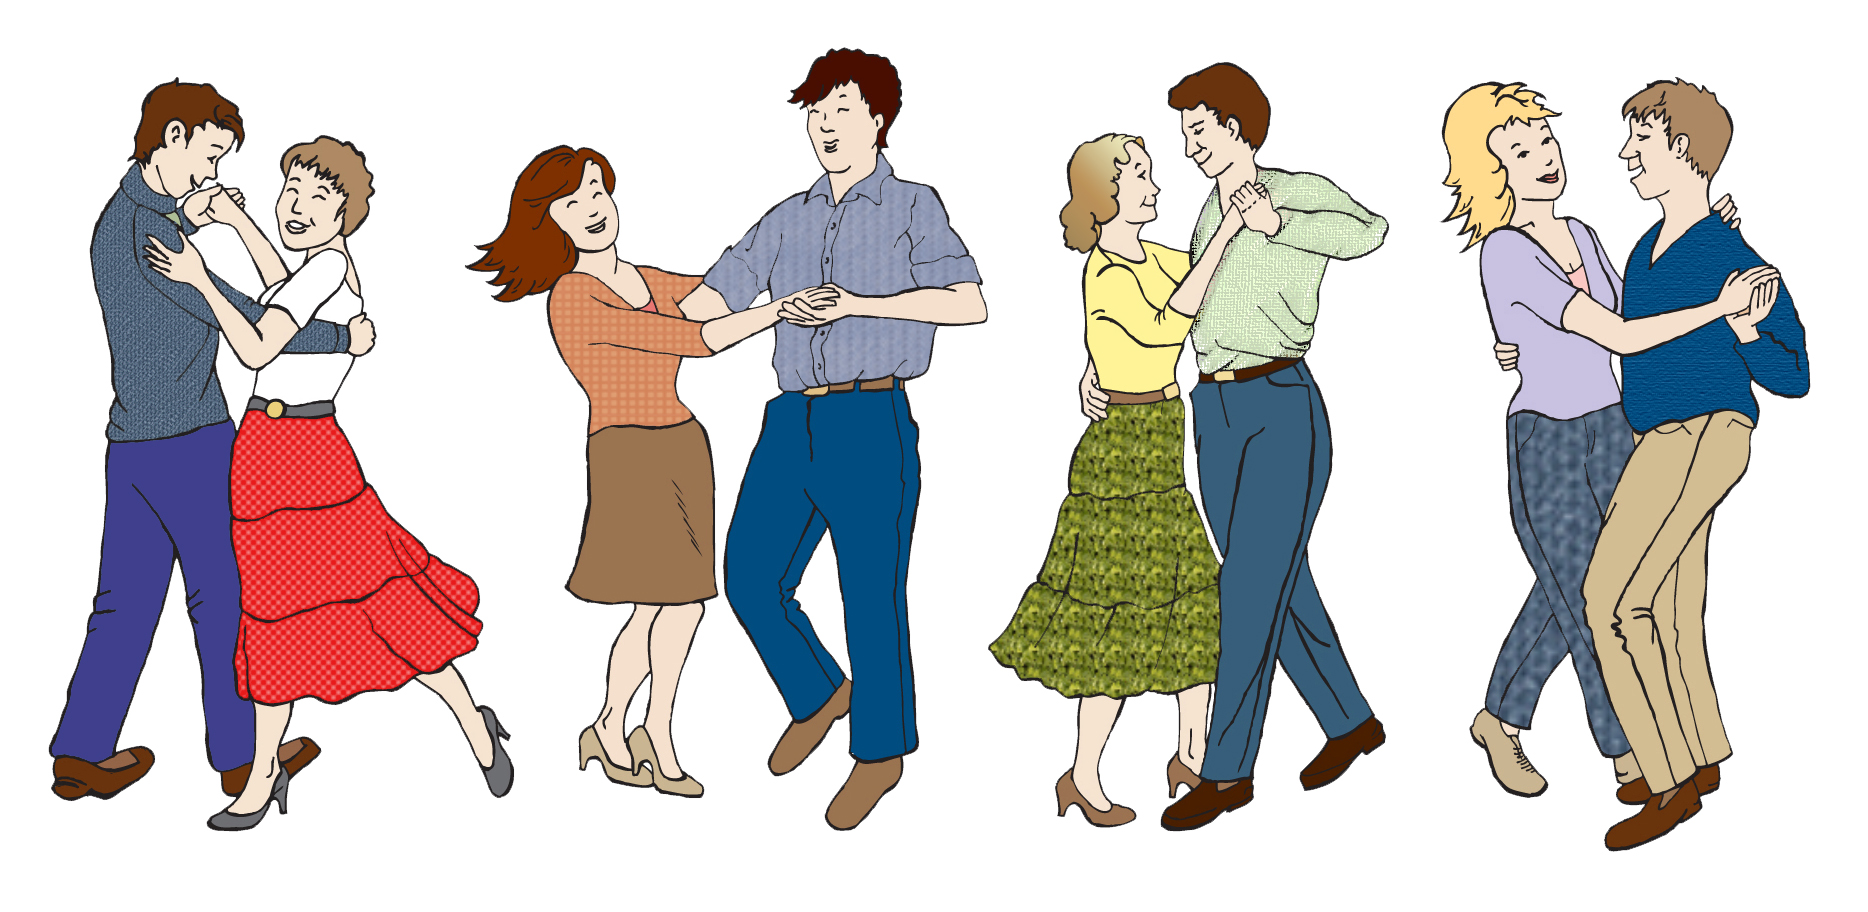 Club clipart group dancing Grand Dancing Home Union Club